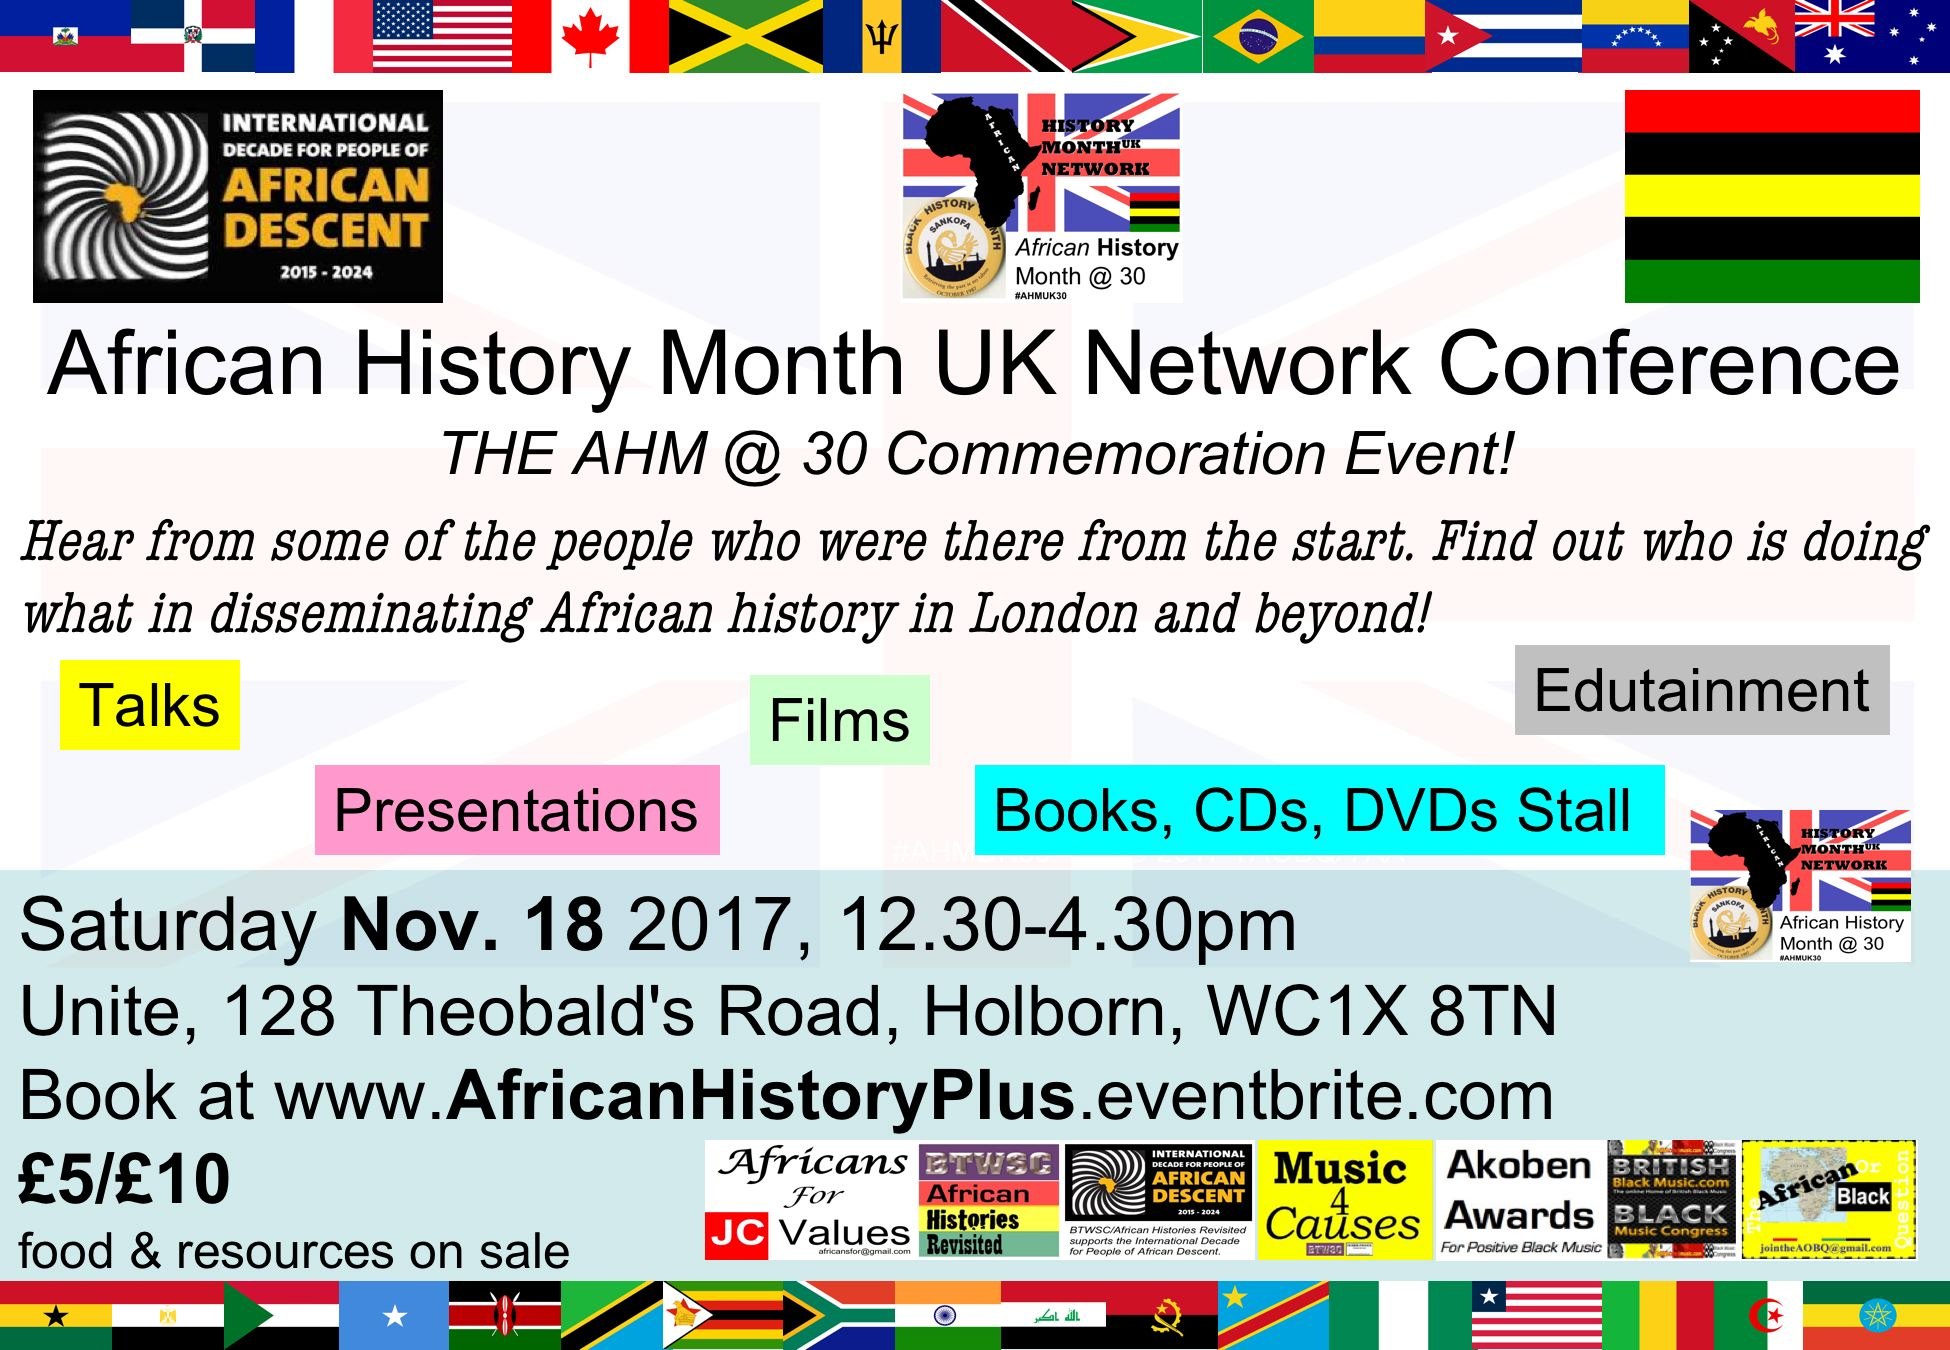 AHMUKNetwork Conference